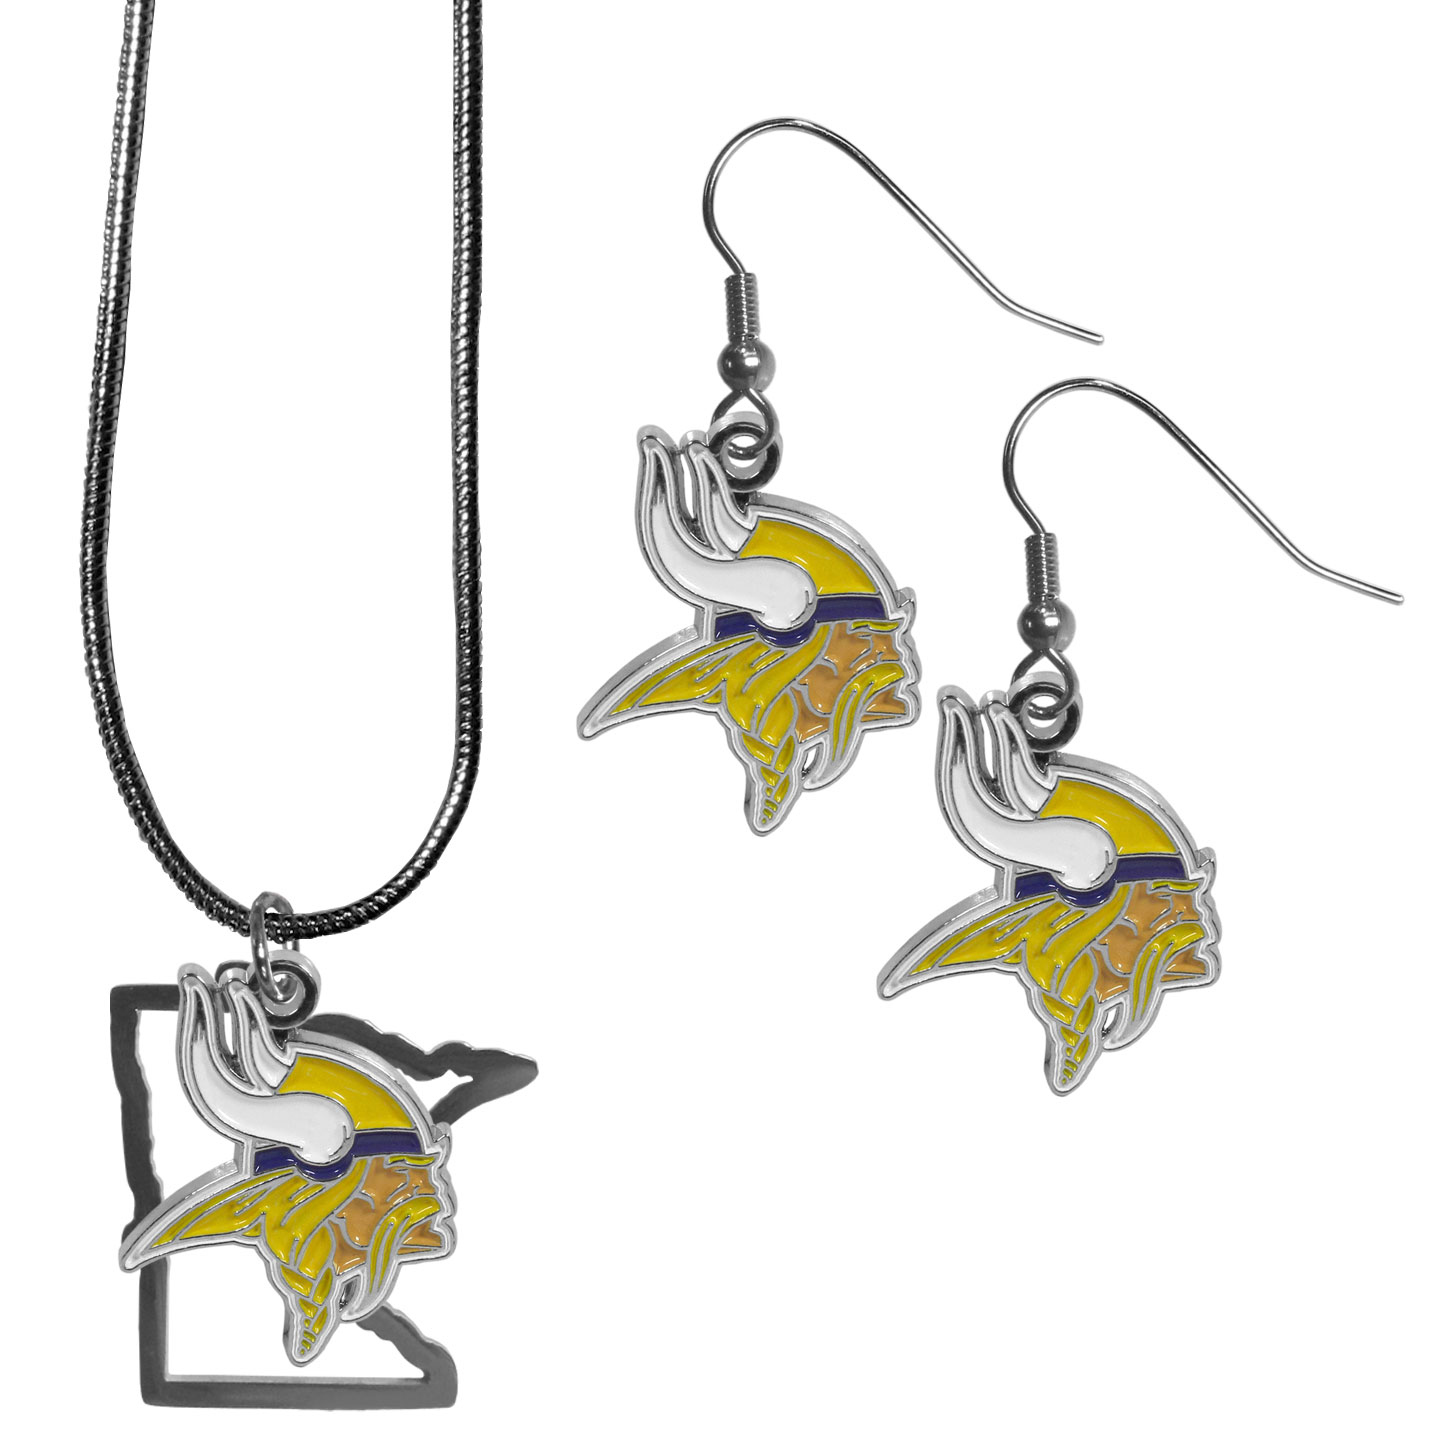 Minnesota Vikings Dangle Earrings and State Necklace Set - Get in on the trend! State themes are a trend that just keeps getting more popular and this jewelry set takes the state style and give it a sporty twist with a Minnesota Vikings necklace that features an Arizona state outline charm paired with a beautiful team charm and matching team charm dangle earrings. The earrings feature hypoallergenic fishhook posts that are nickel free.